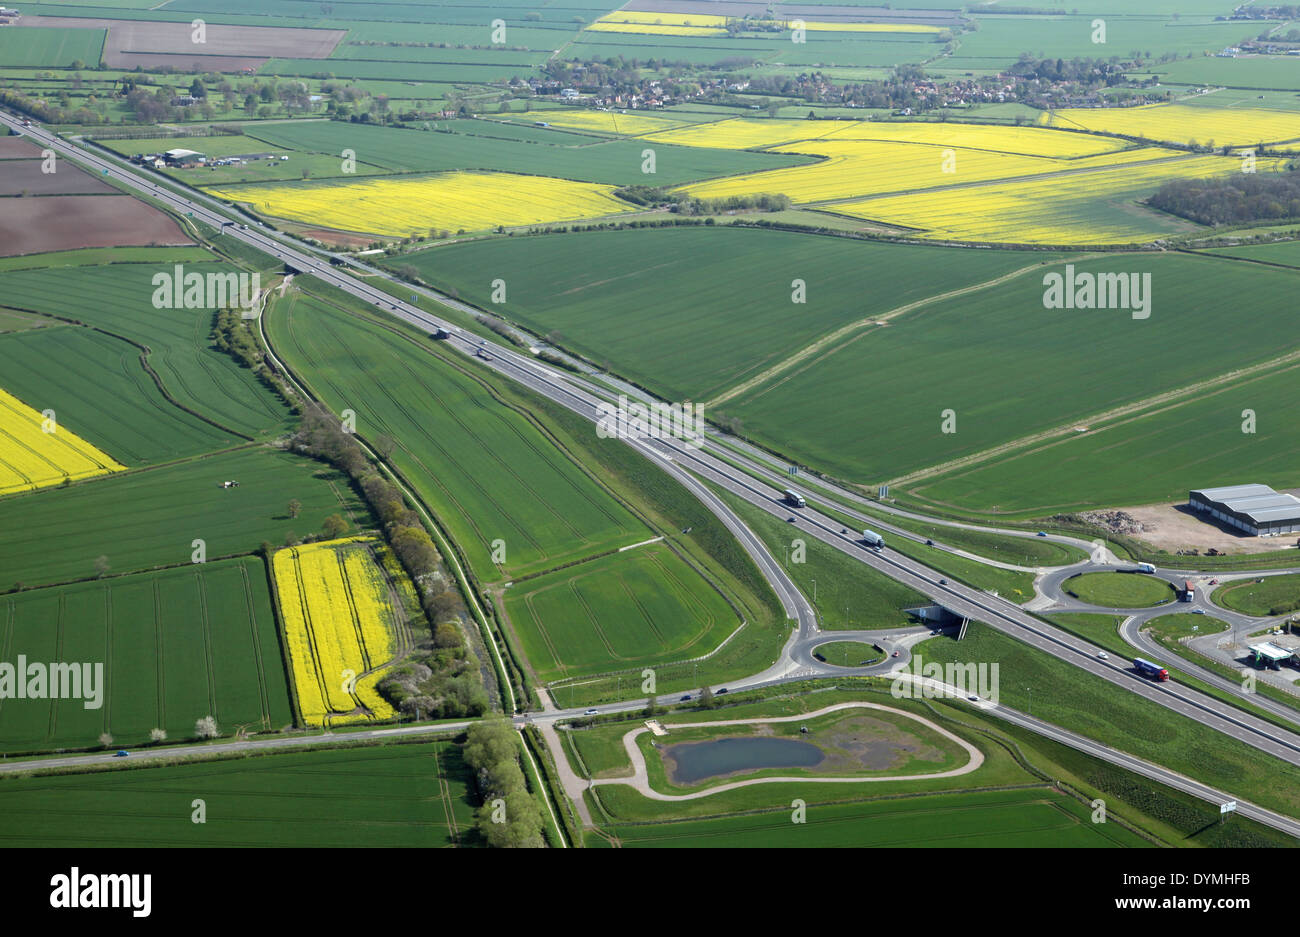 aerial view of the A46 dual carriageway main road in Leicestershire, UK - Stock Image